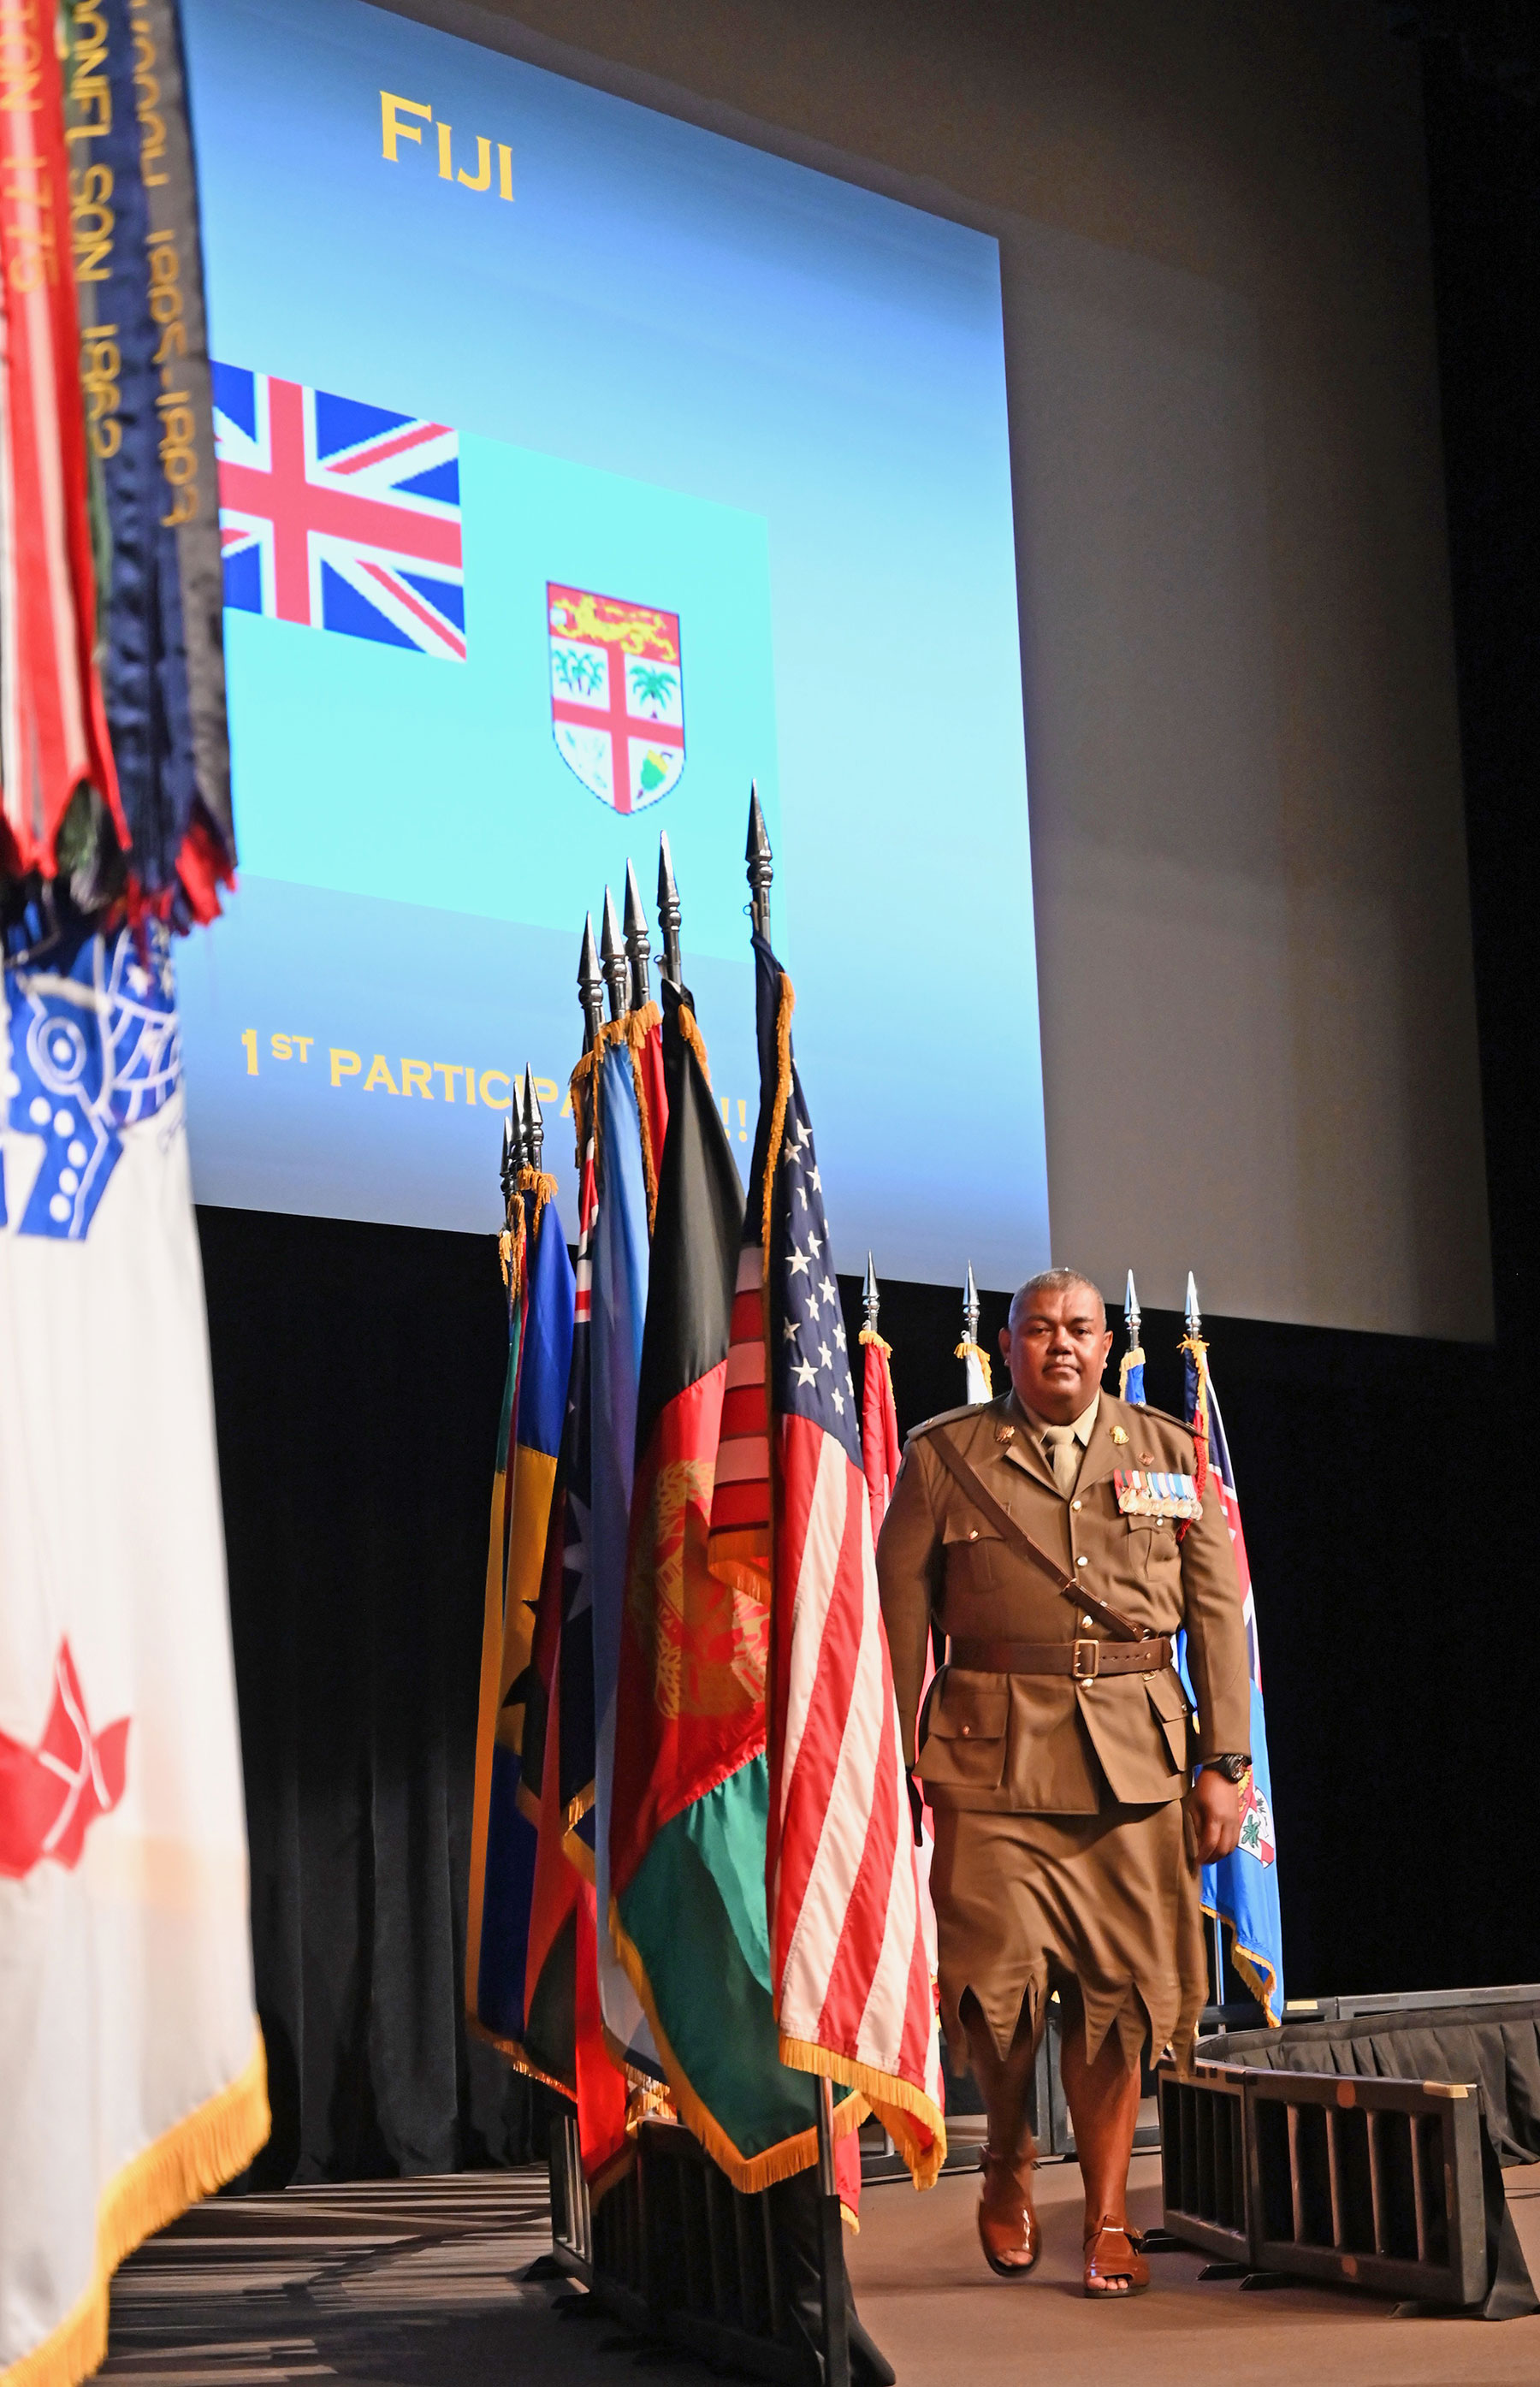 The first-ever international military student from Fiji marches off stage after posting his nation's colors during the CGSC Class of 2020 Flag Ceremony on Aug. 5, 2019.